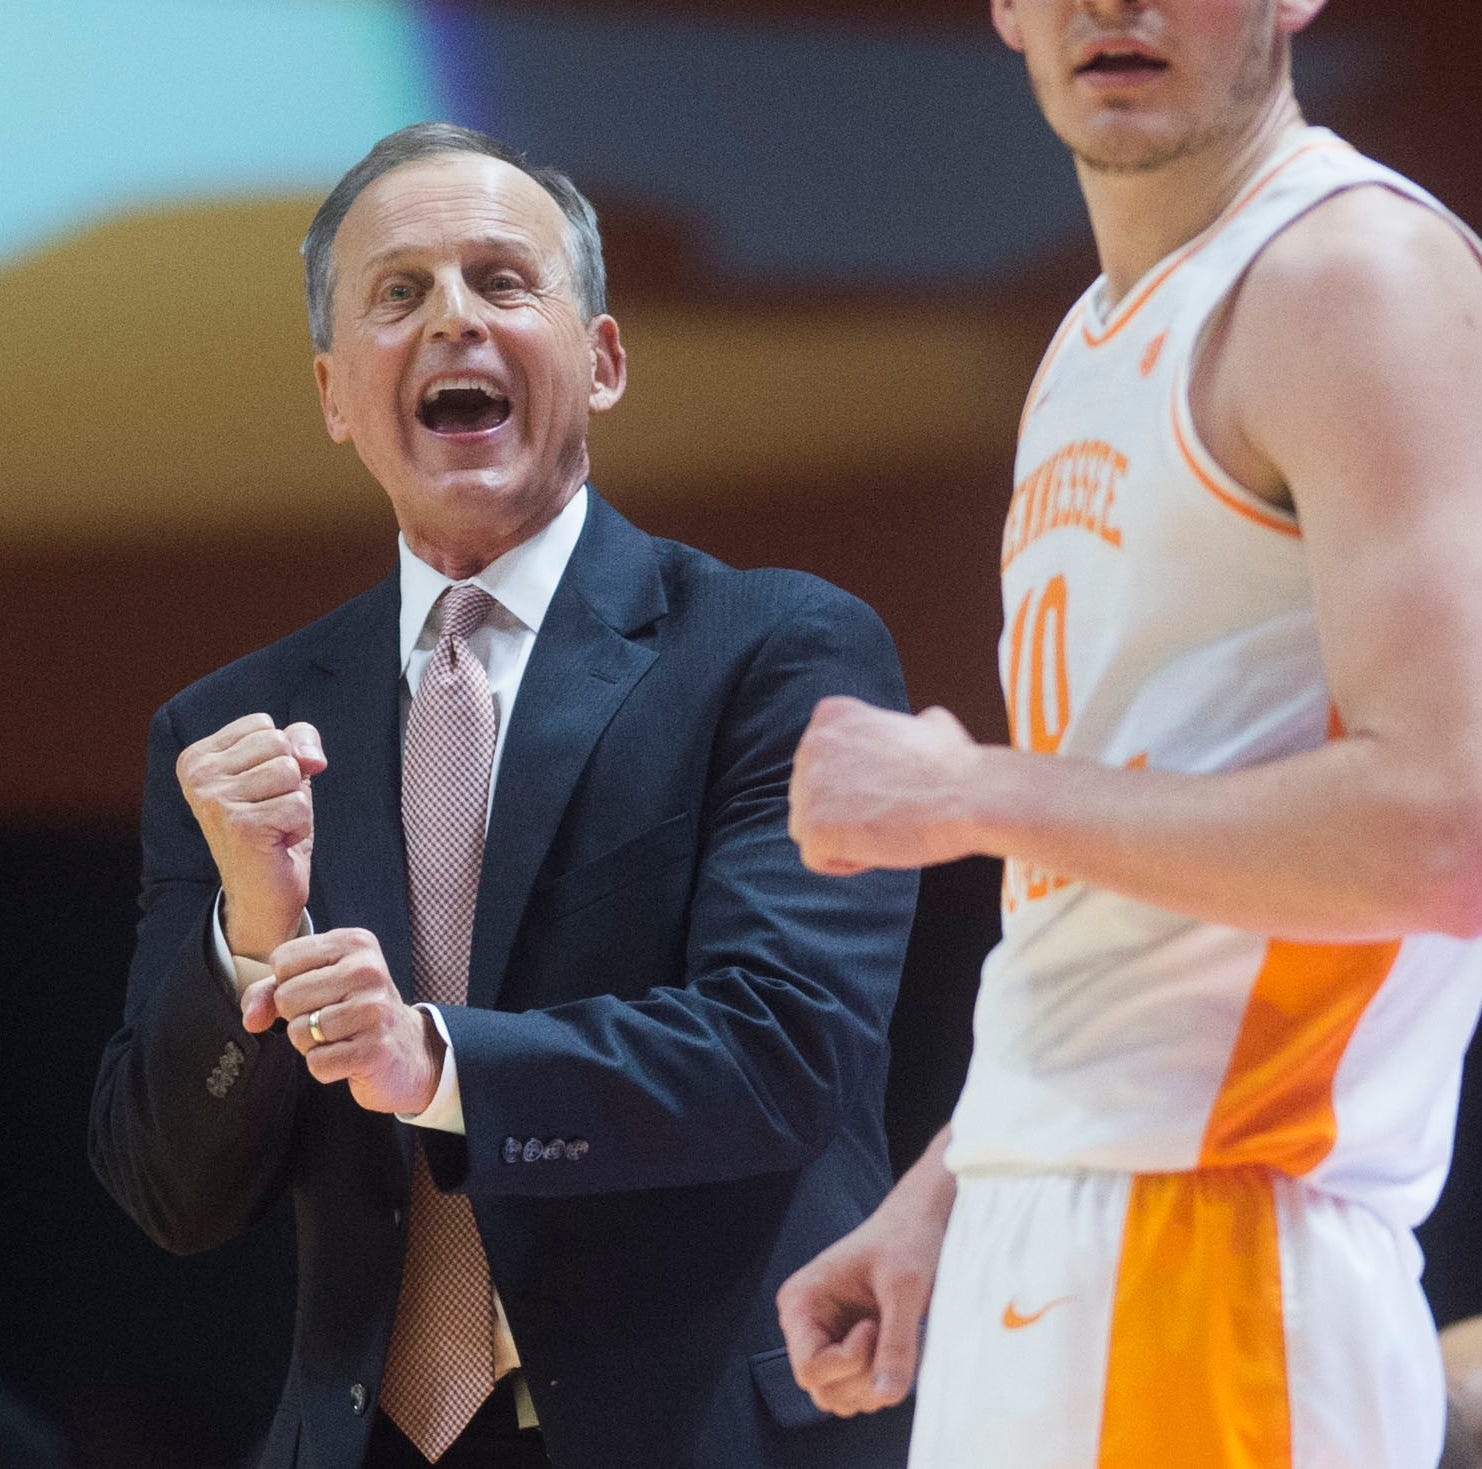 UT Vols have potential for long-term prominence in college basketball